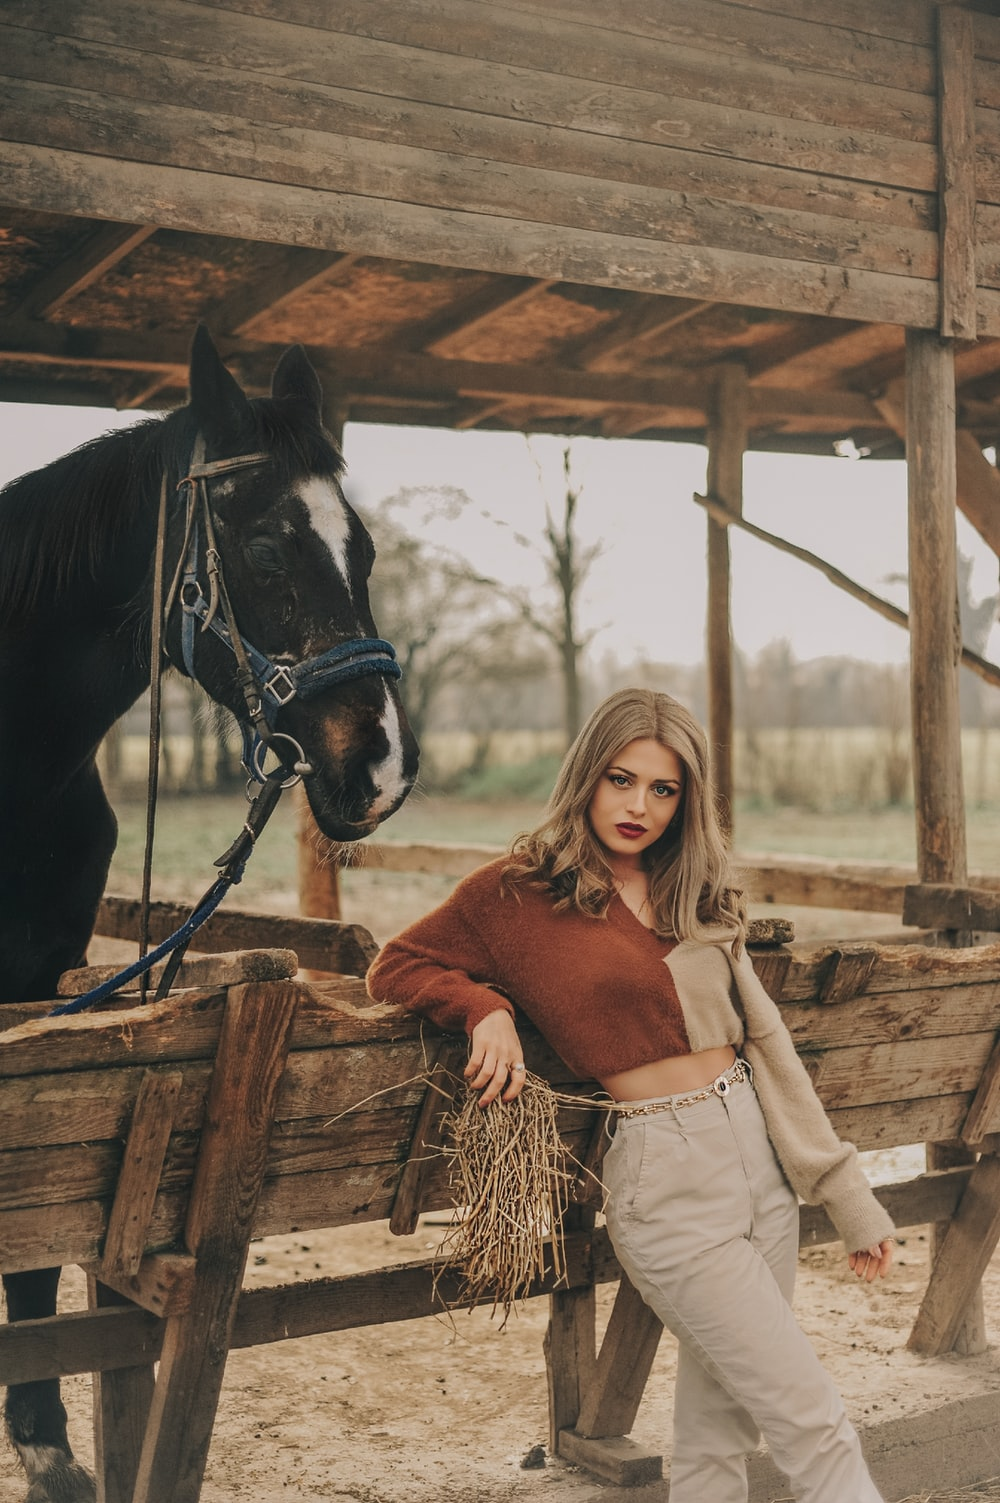 woman in brown sweater riding black horse